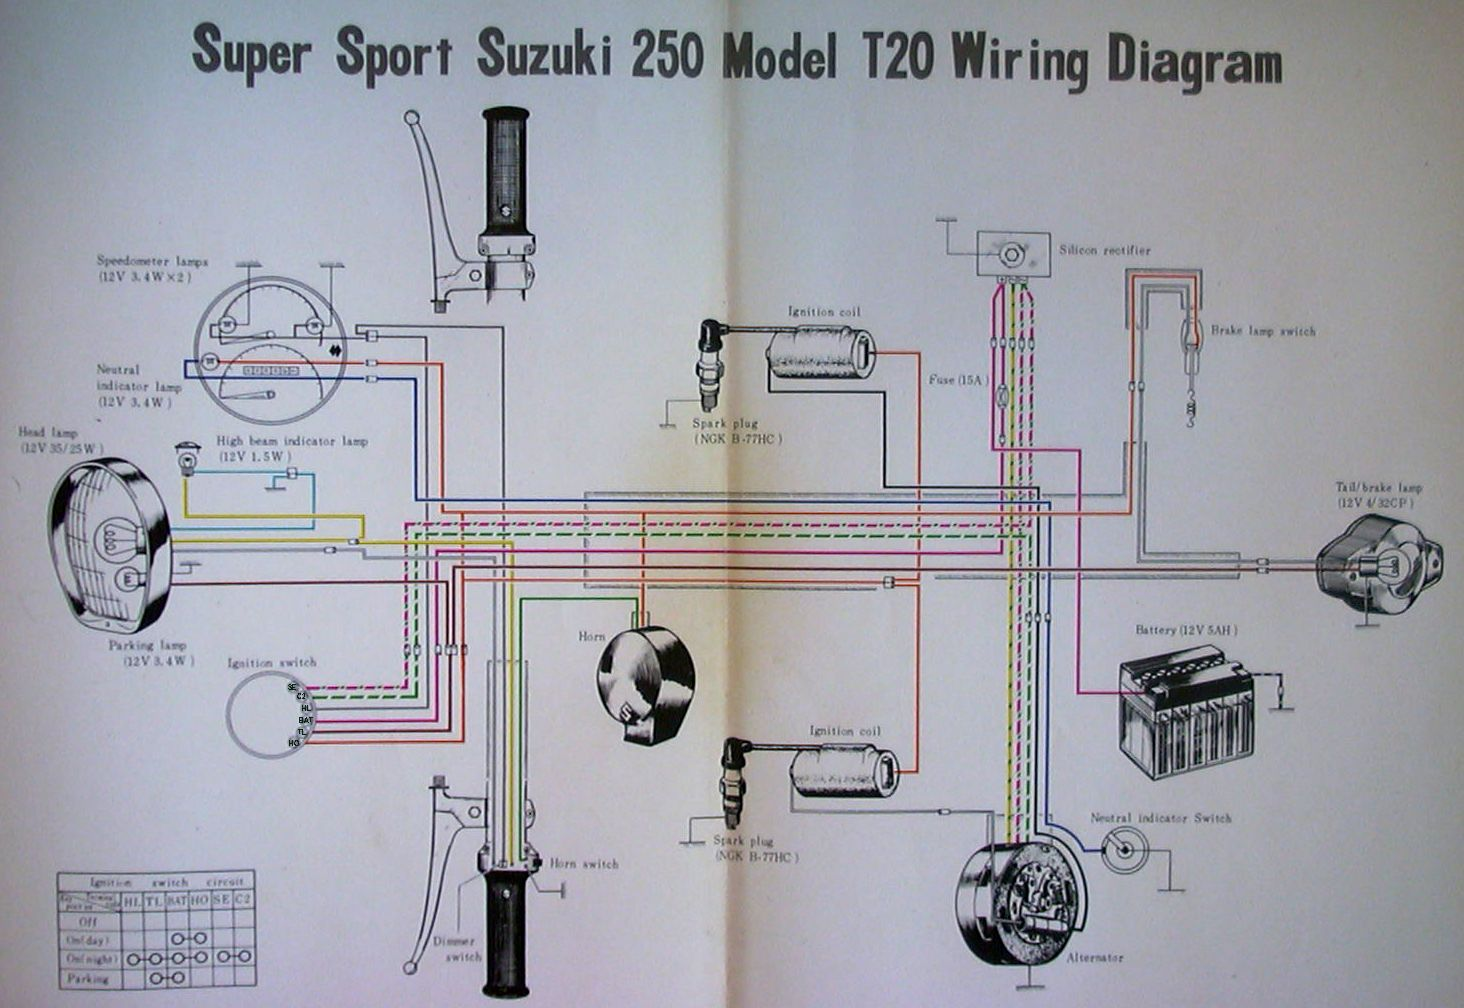 hight resolution of suzuki wiring diagram home wiring diagram suzuki wiring diagram motorcycle suzuki wire diagram